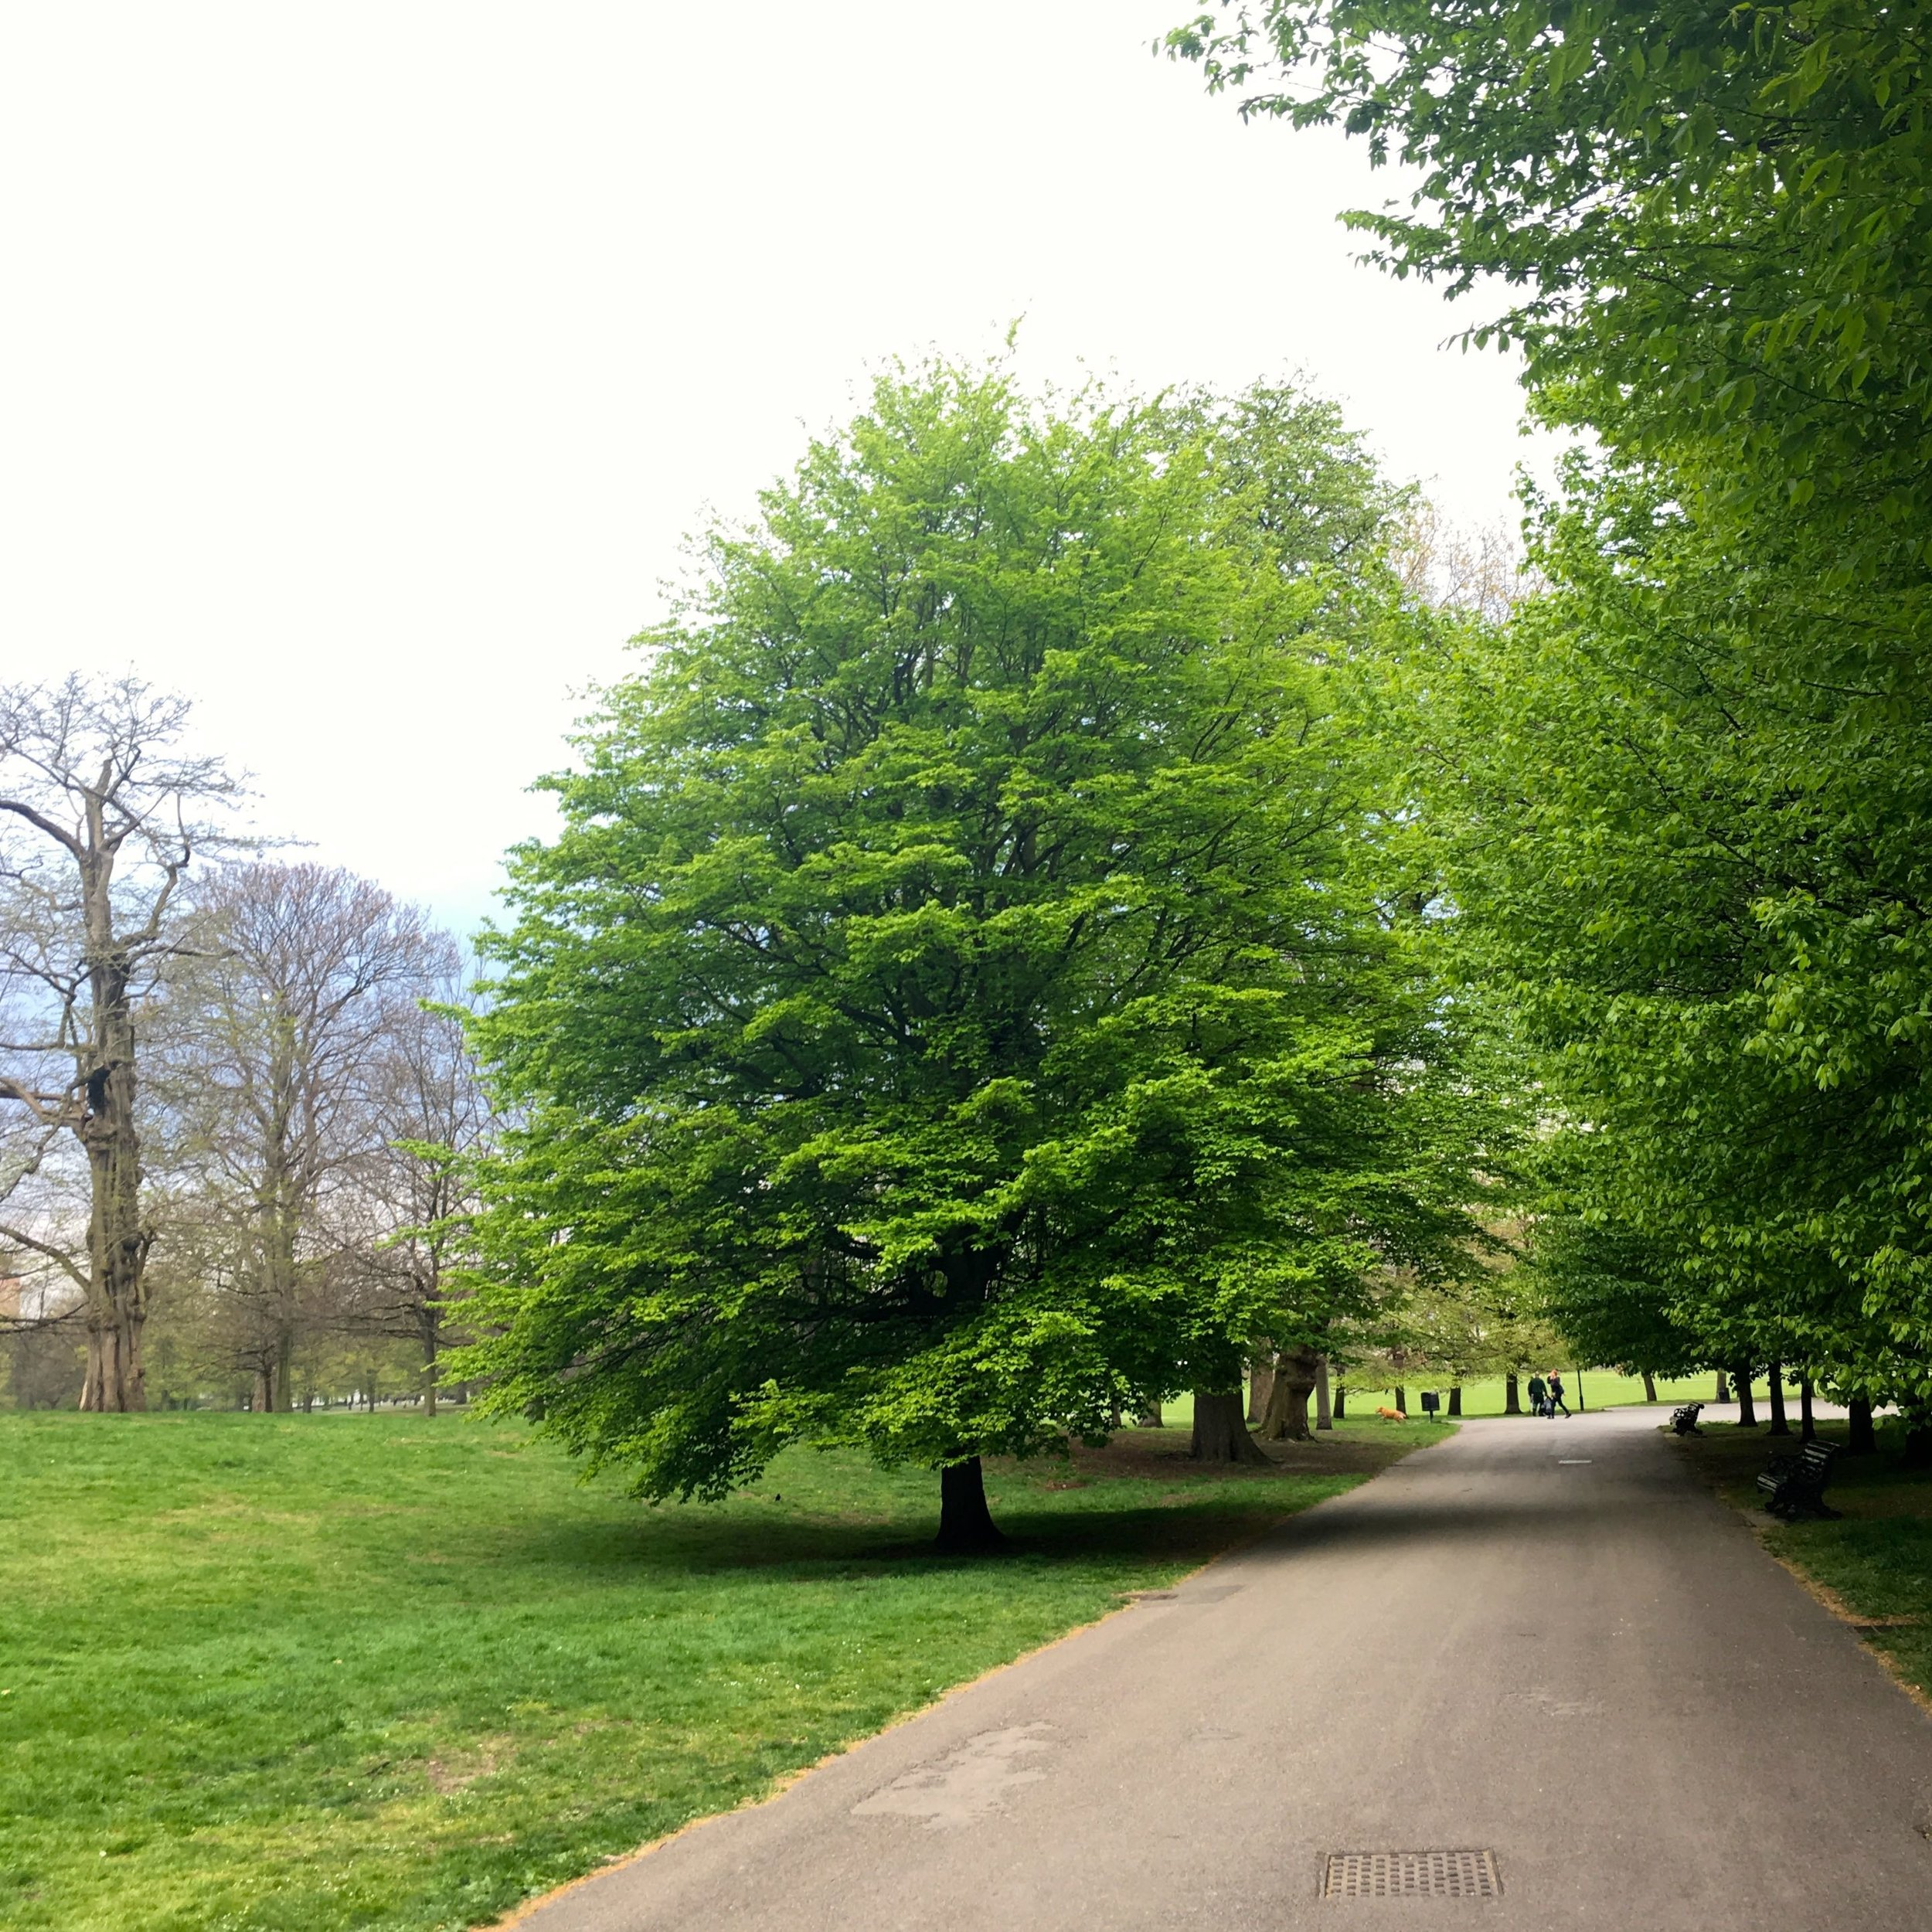 My tree is now in full leaf and looking resplendent in greenwich park this april